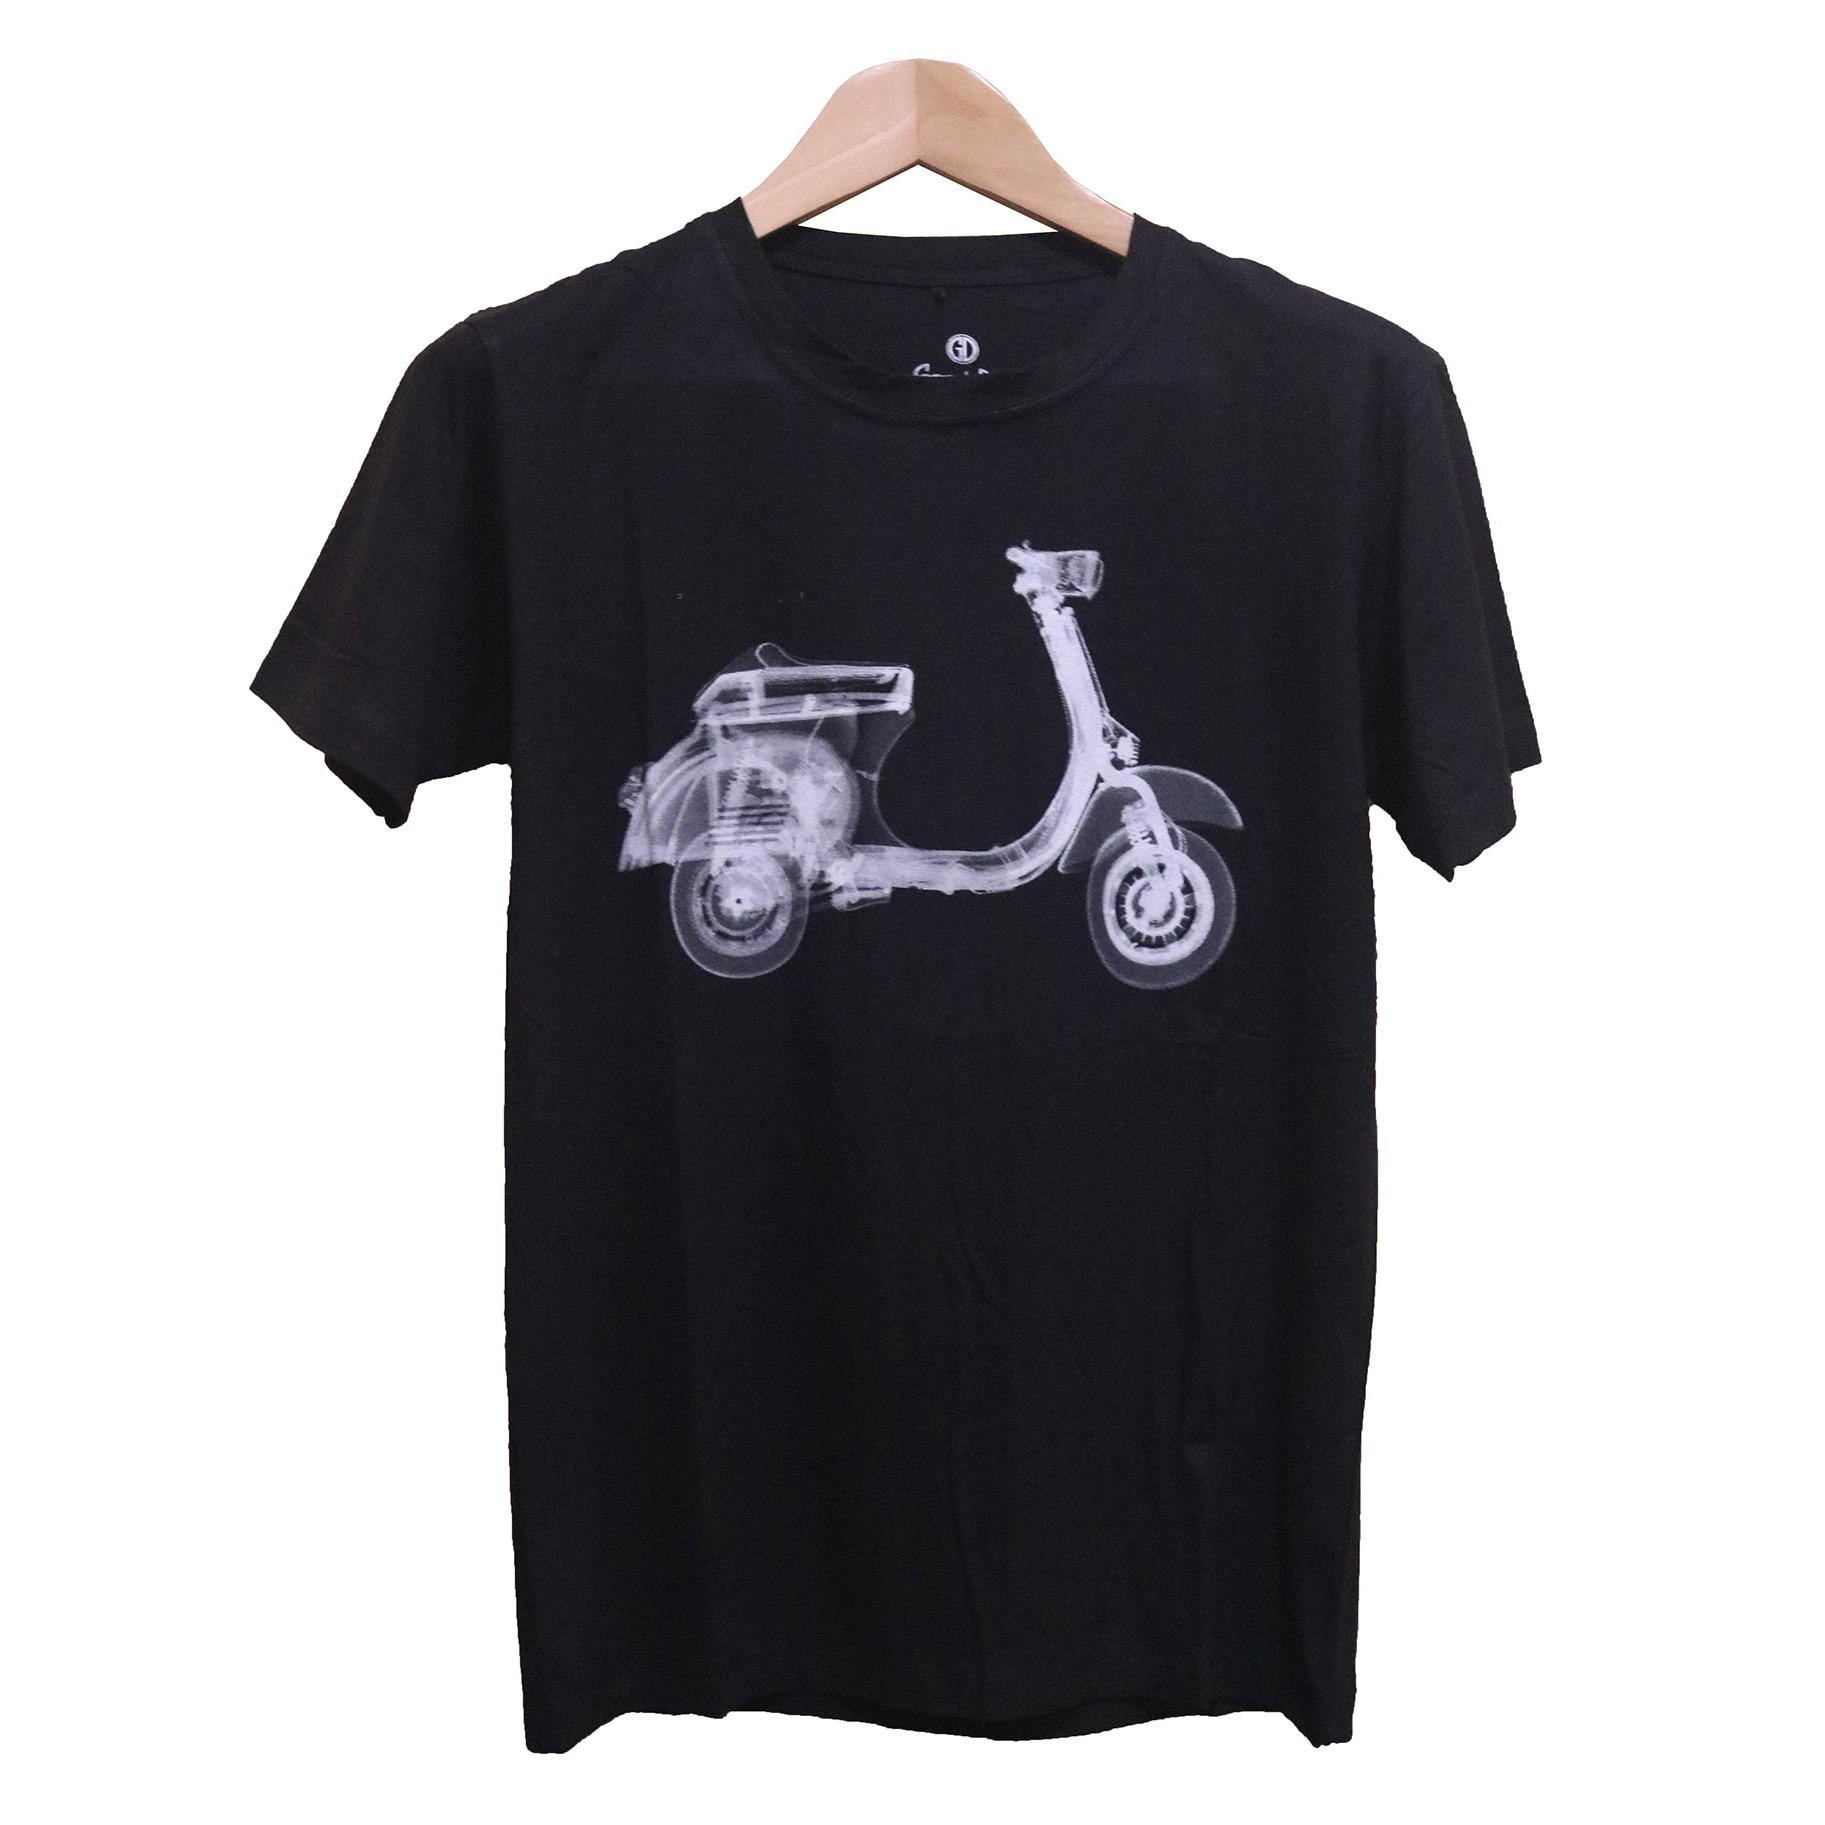 Cikitashop - Kaos T-Shirt Distro / Kaos Pria / T-Shirt Pria Anime Premium Do You Vespa